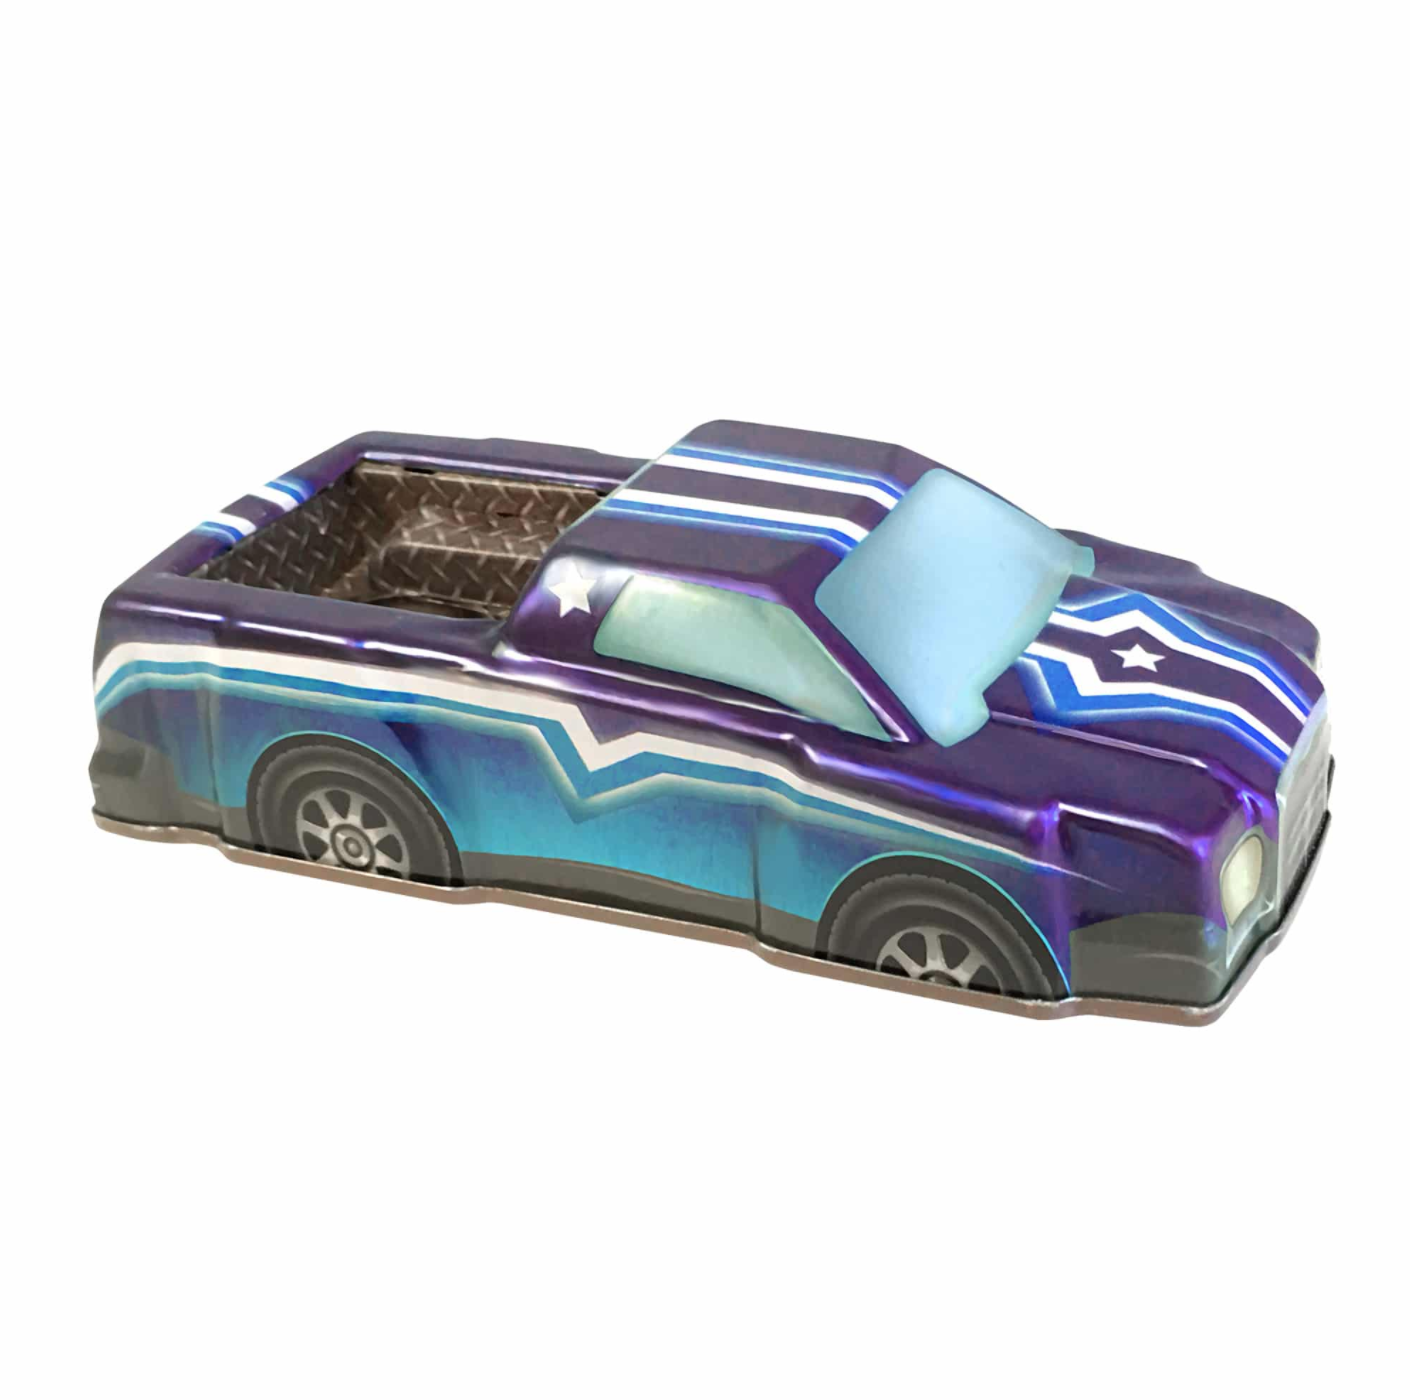 Rev-Up Racers Tin Trucks Purple & Blue Star